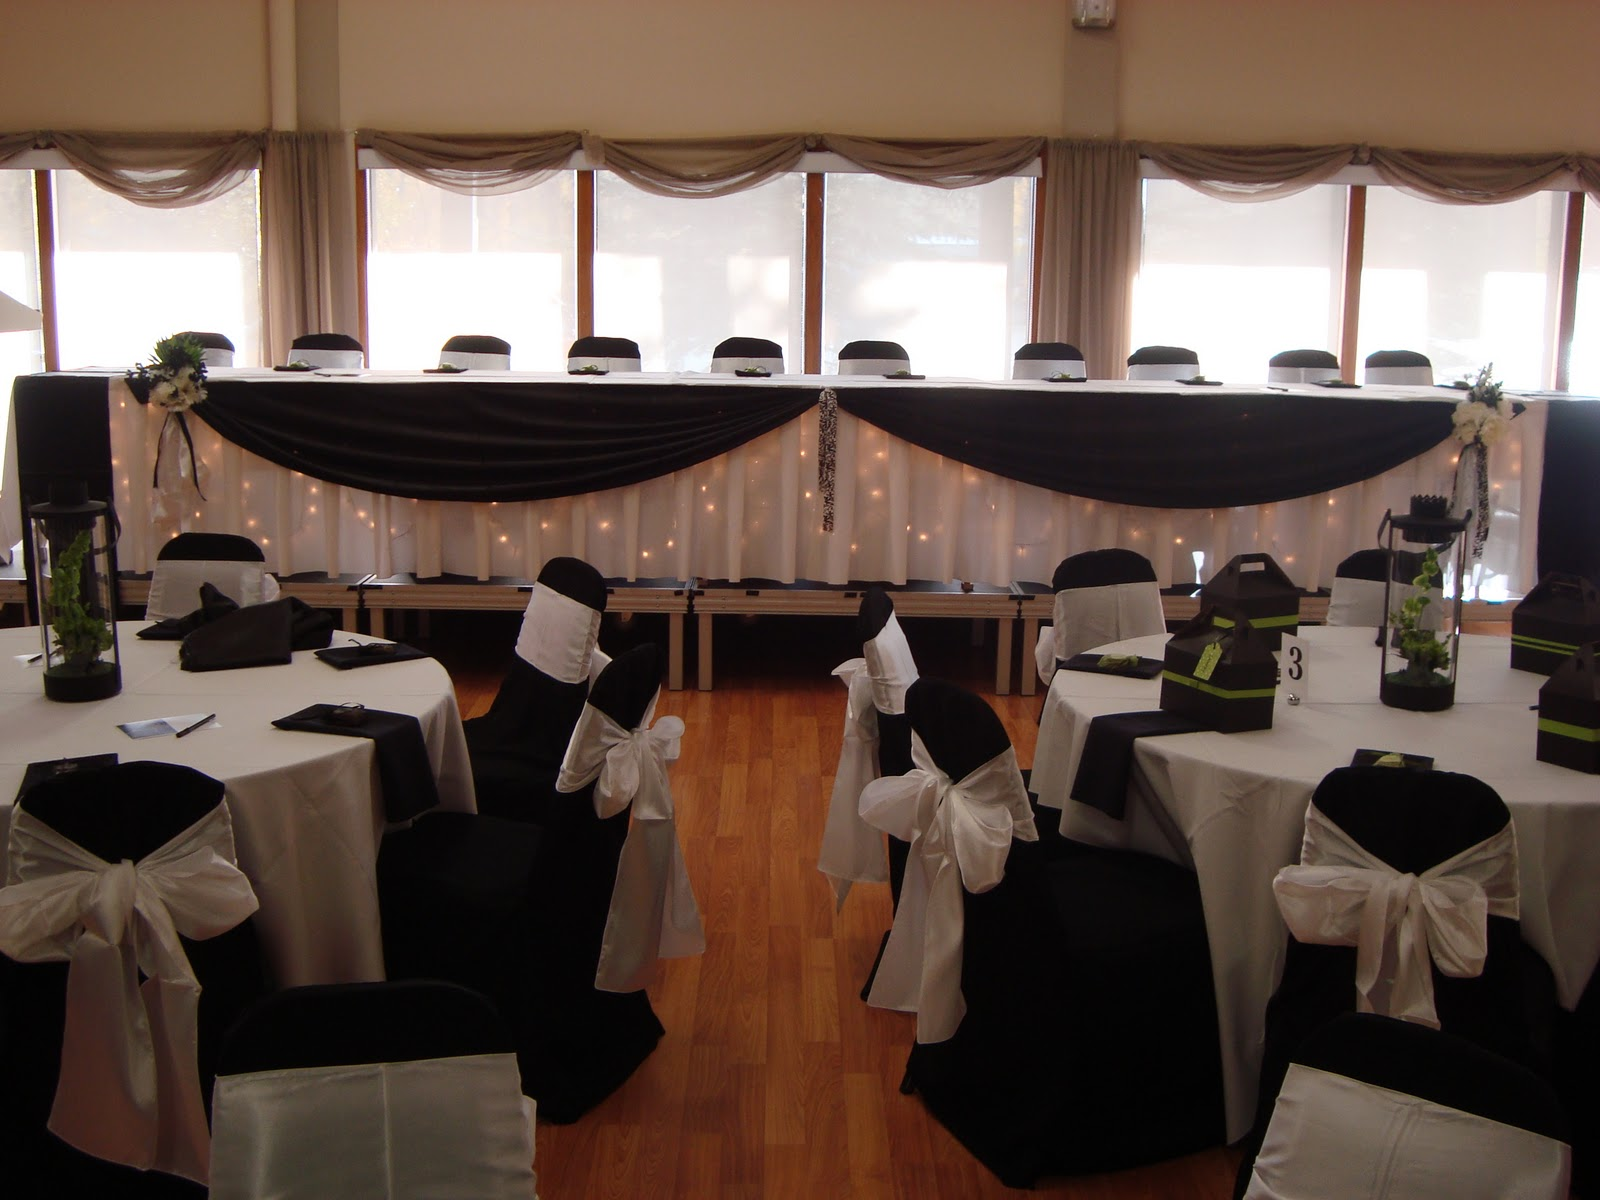 chair cover rentals victoria bc backyard fire pit chairs wedding decoration reception decor